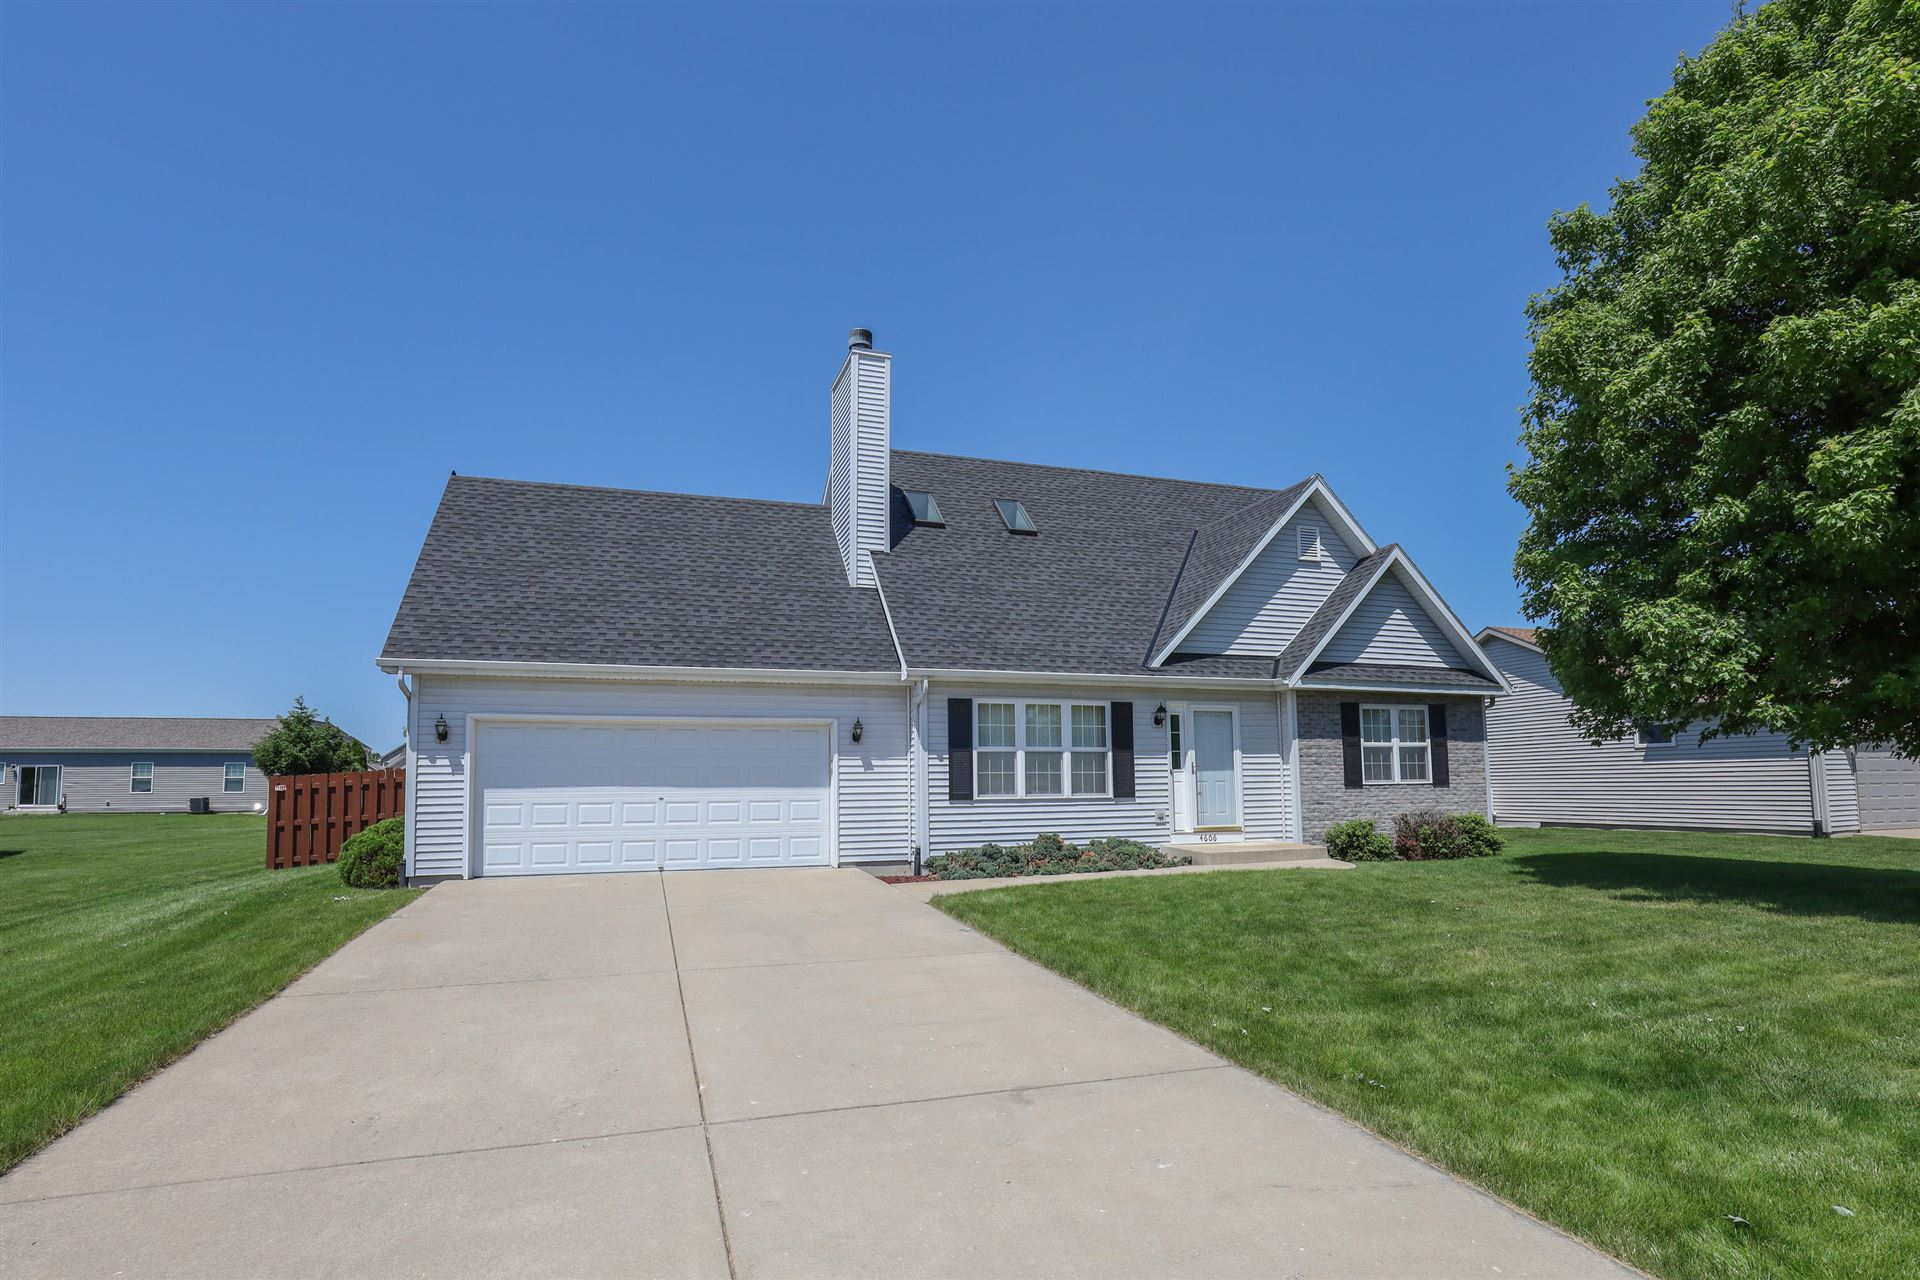 4606 Beacon View Dr, Caledonia, WI 53402 - #: 1693650